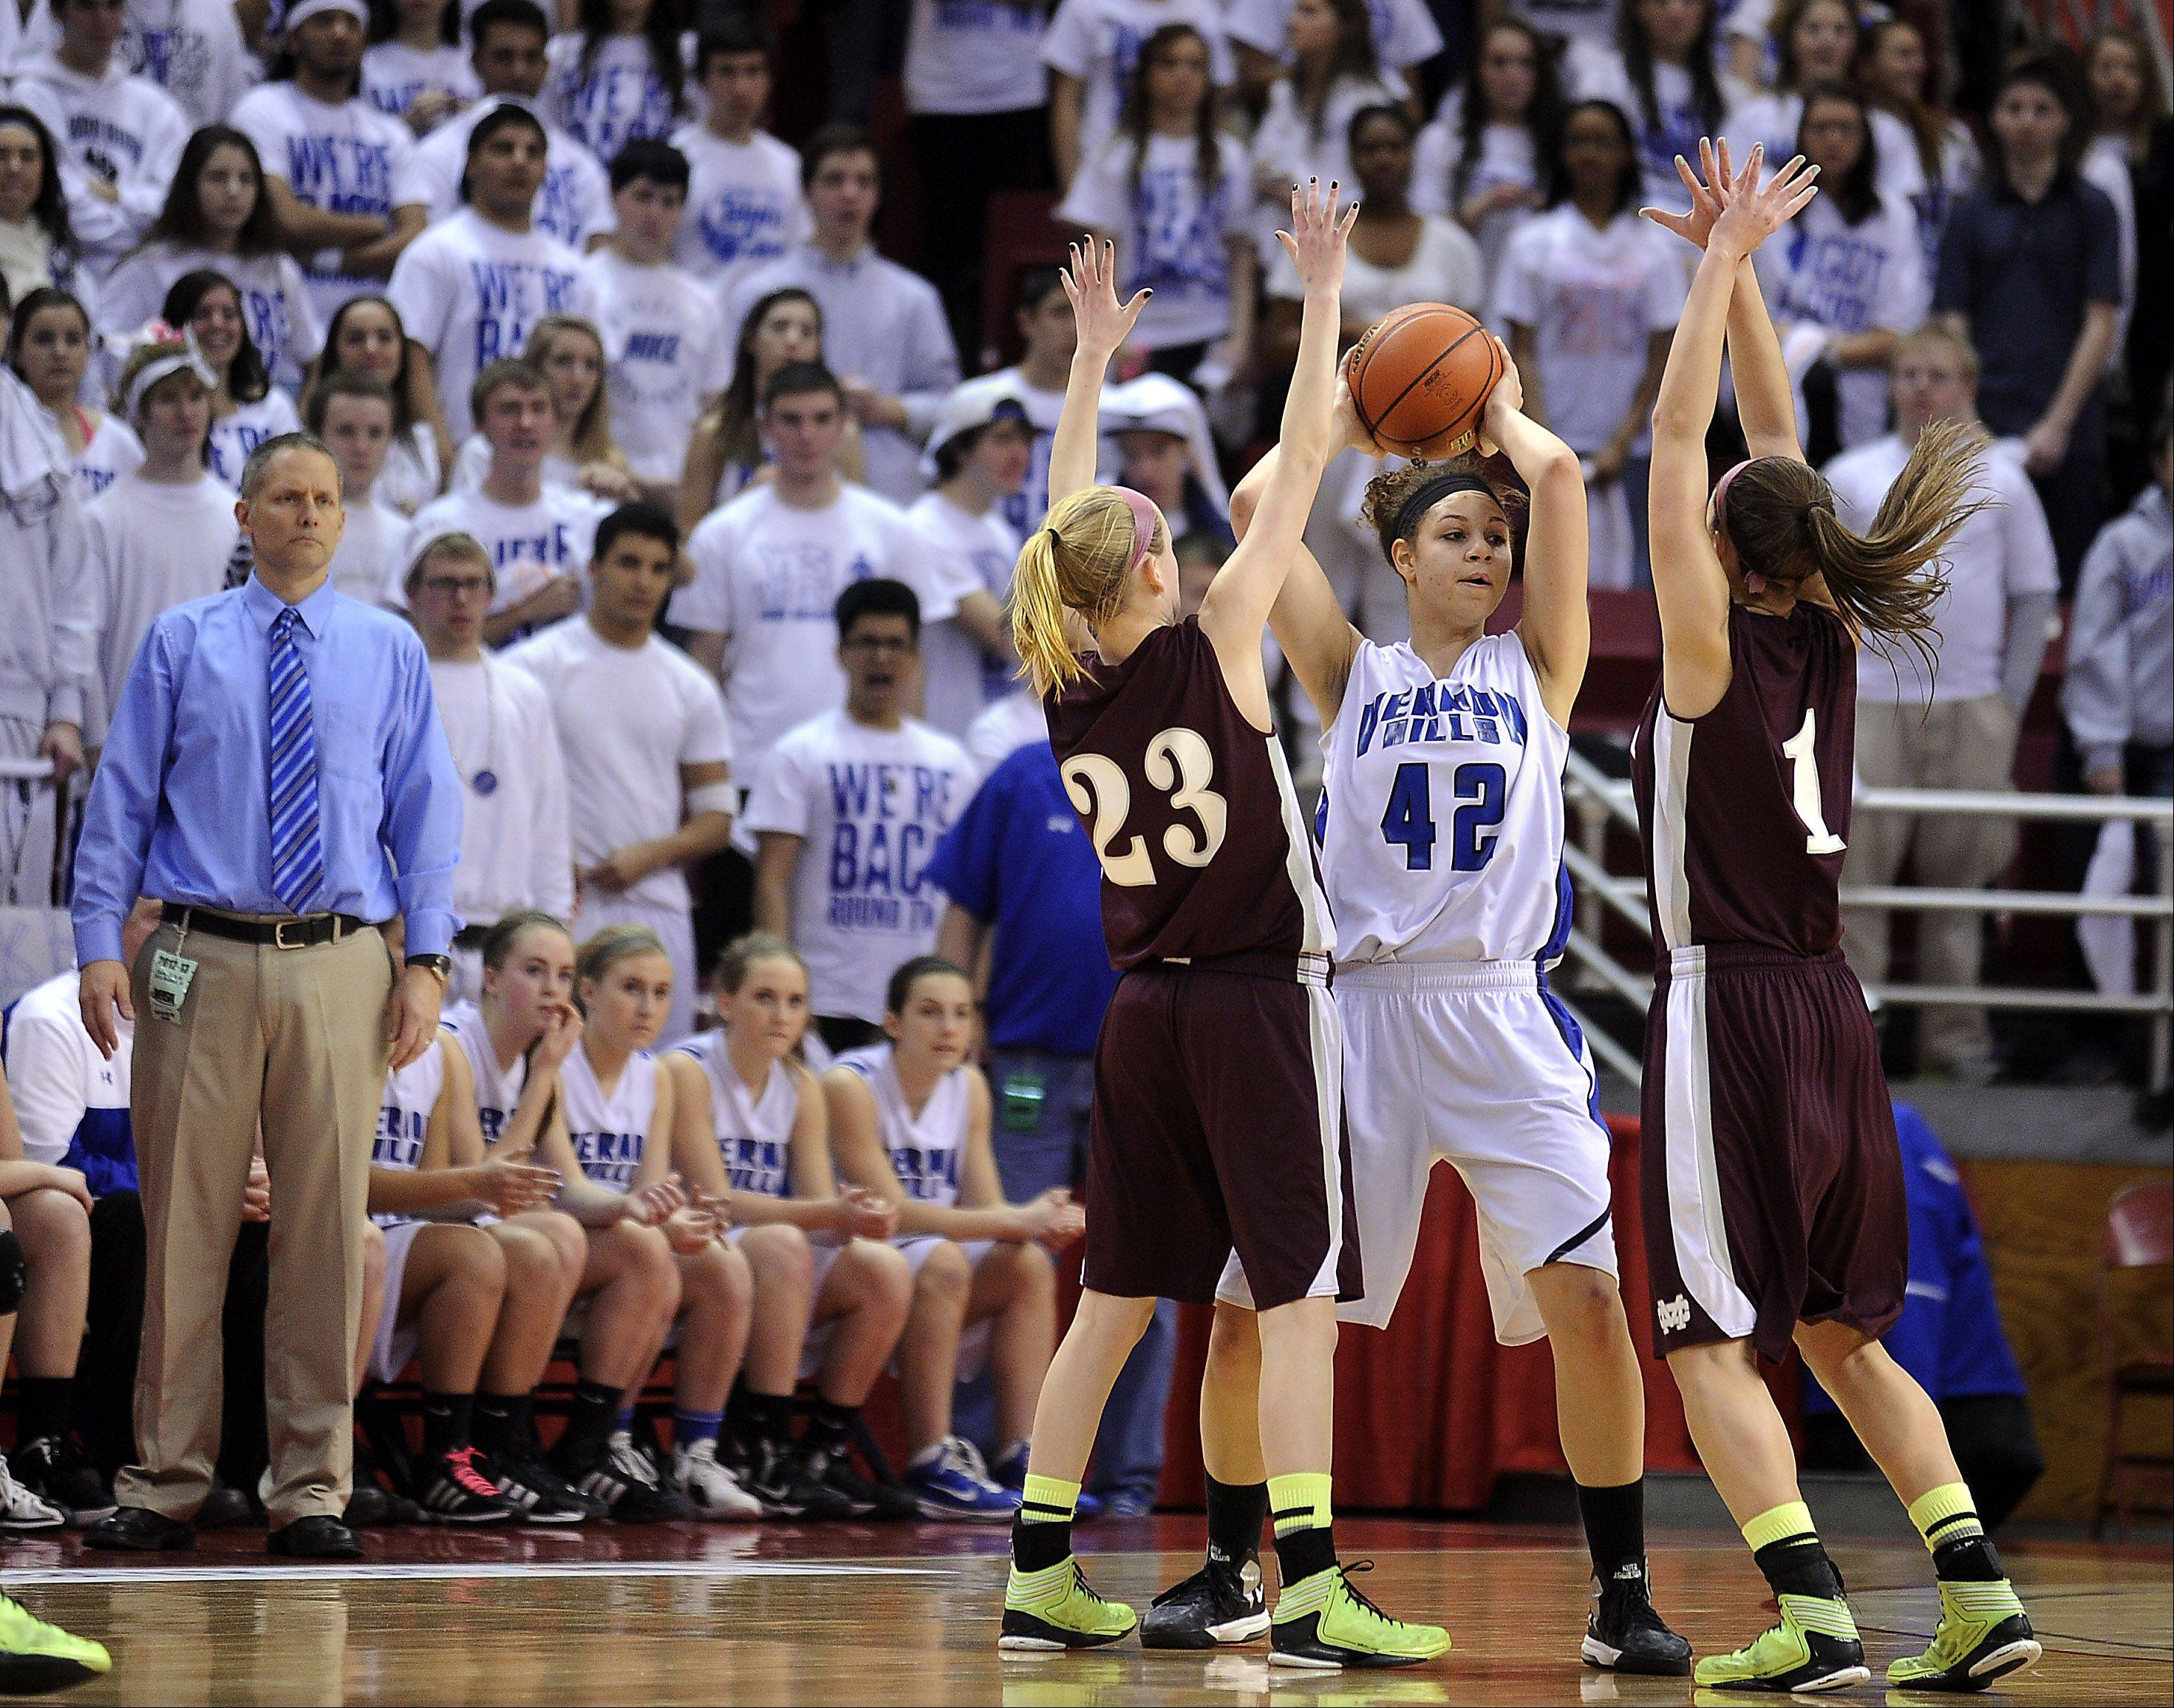 Vernon Hills Lauren Webb is guarded by Montini's Lea Kerstein and Kelsey Bogdan.